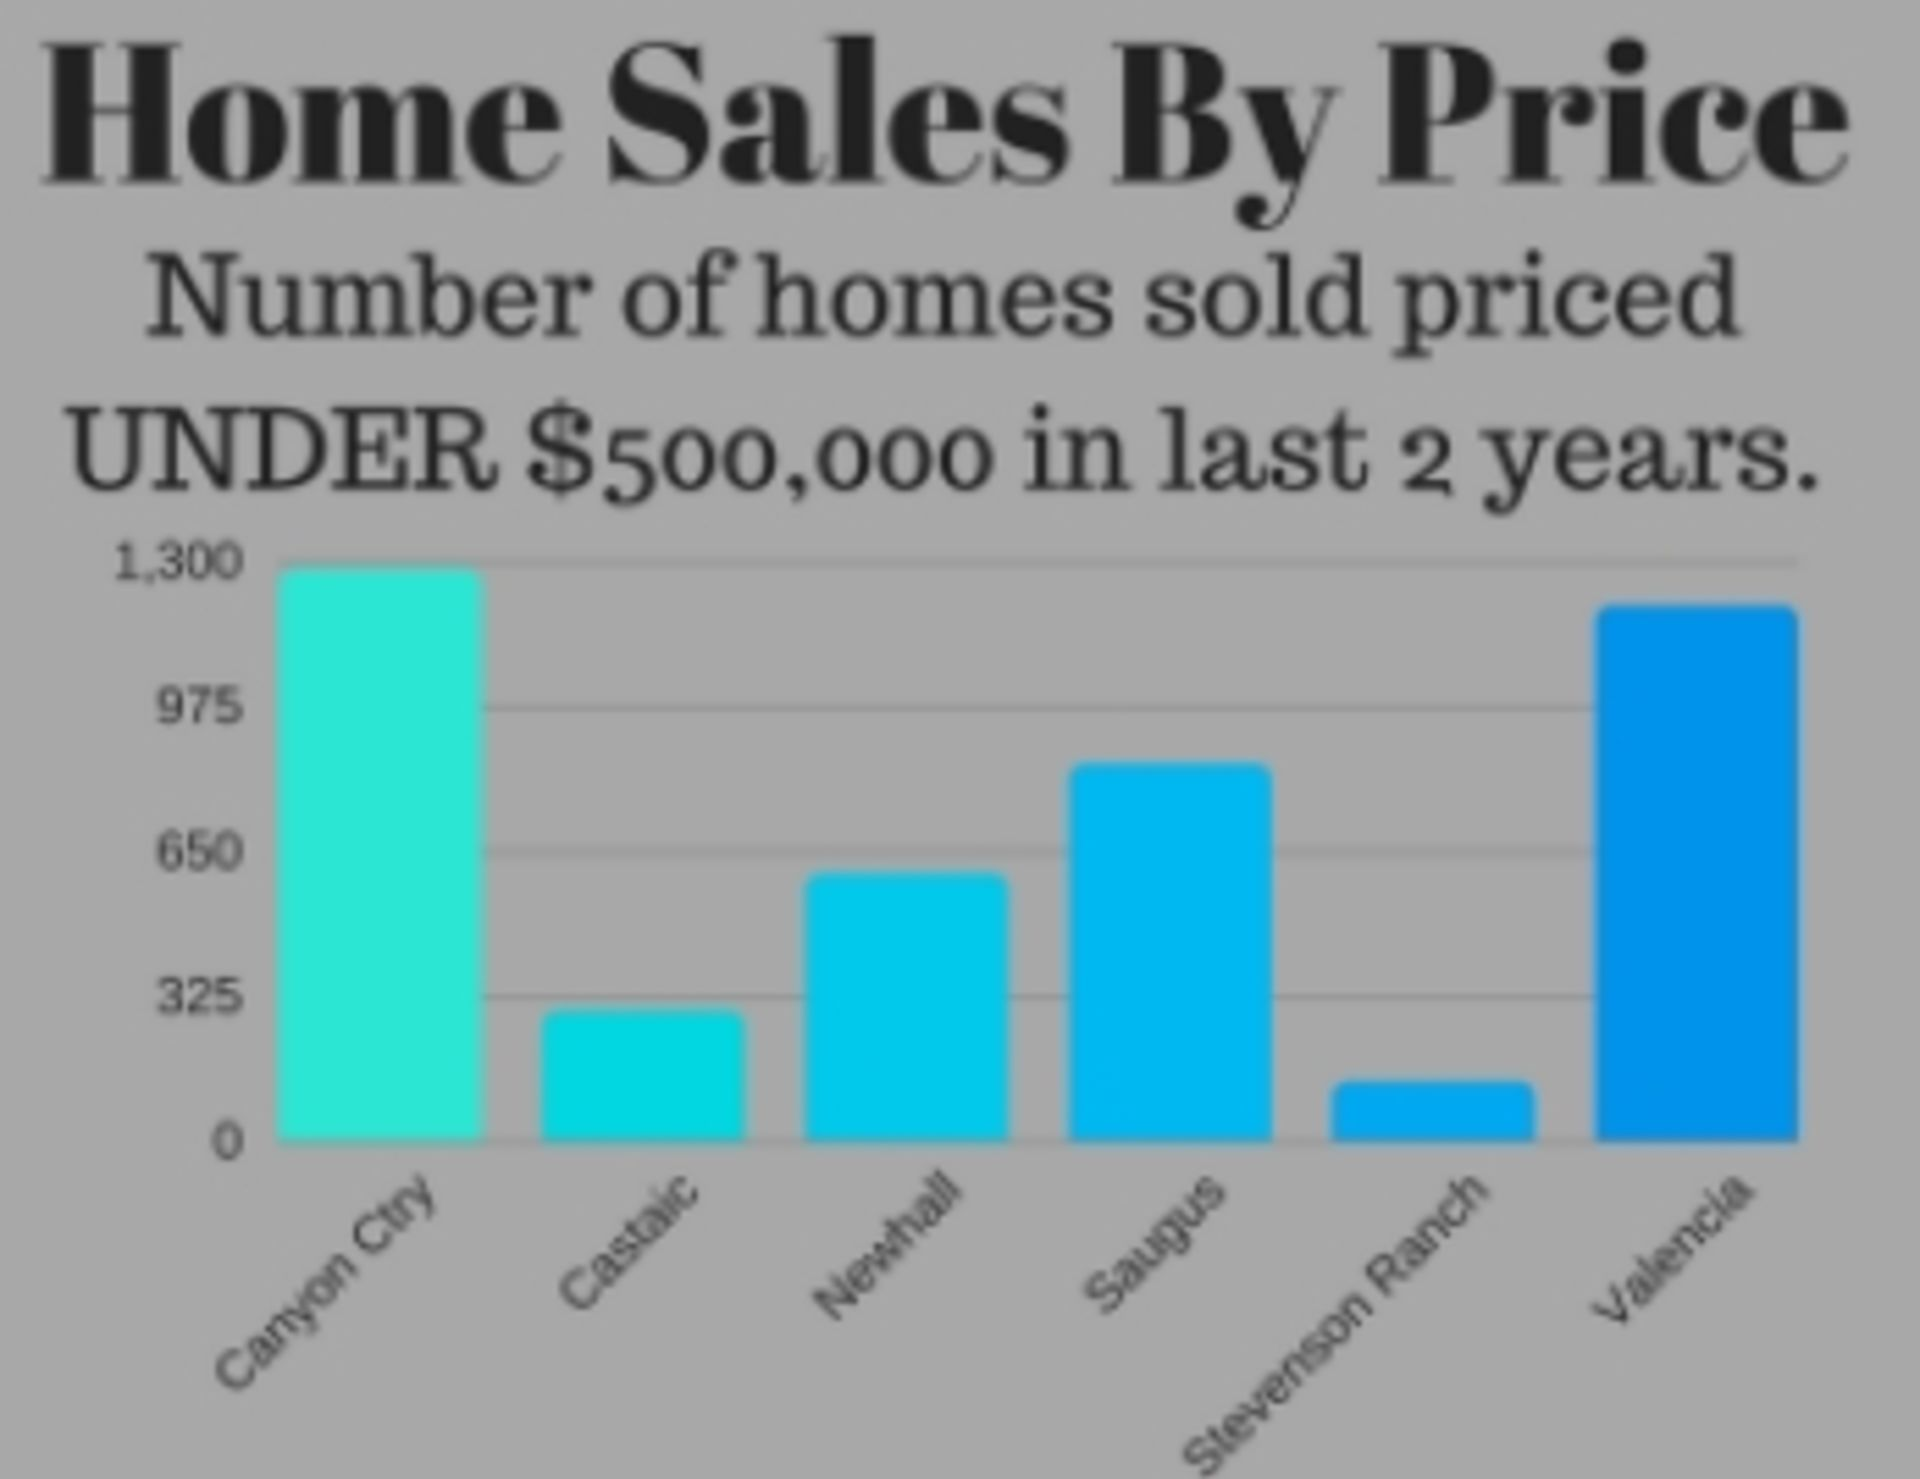 Where Are The 'Value-Priced' Homes?